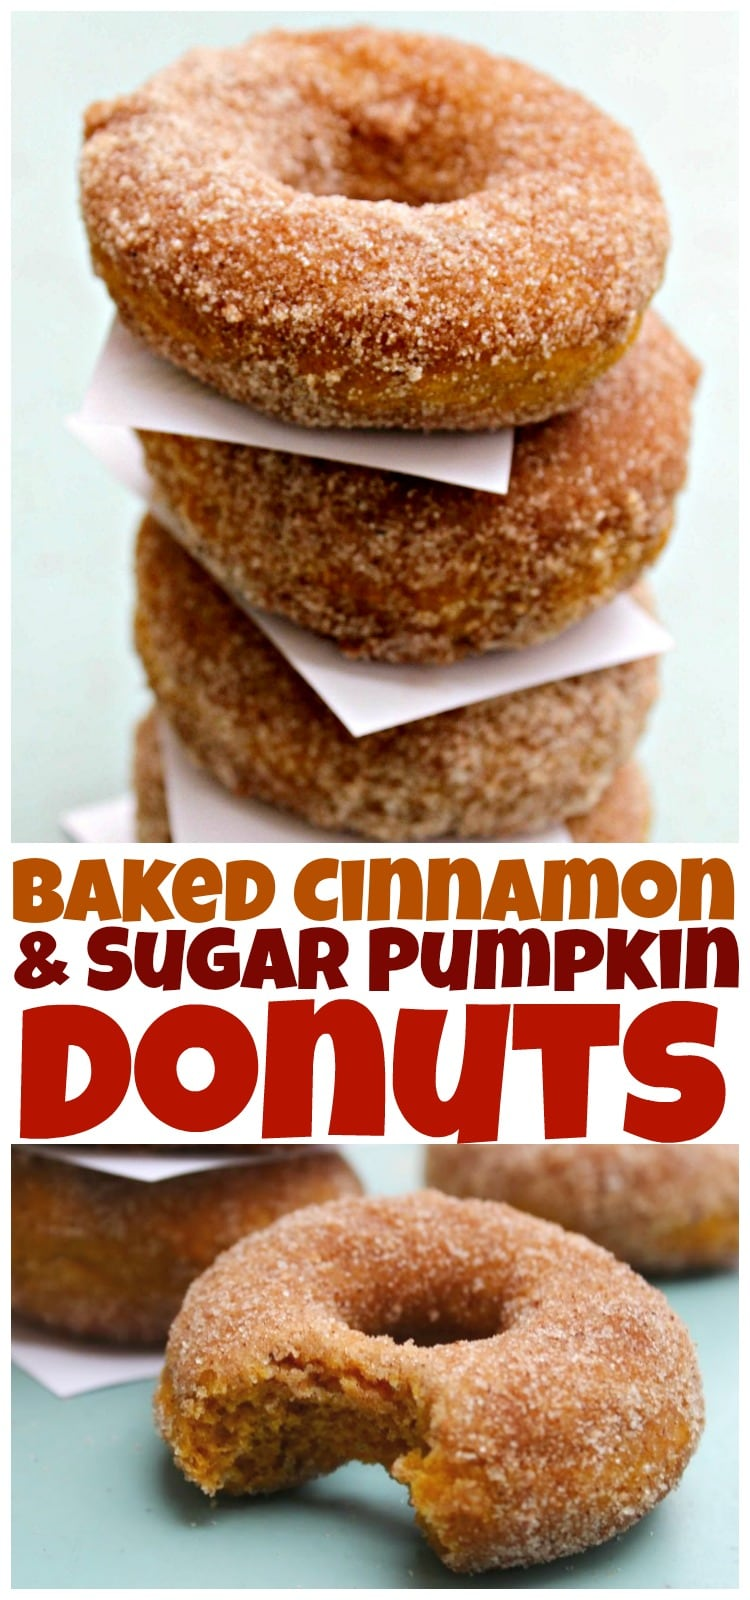 Baked Cinnamon & Sugar Pumpkin Donuts - An easy recipe for baked pumpkin donuts coated in cinnamon-sugar. Best fall treat, of course, next to PSL.